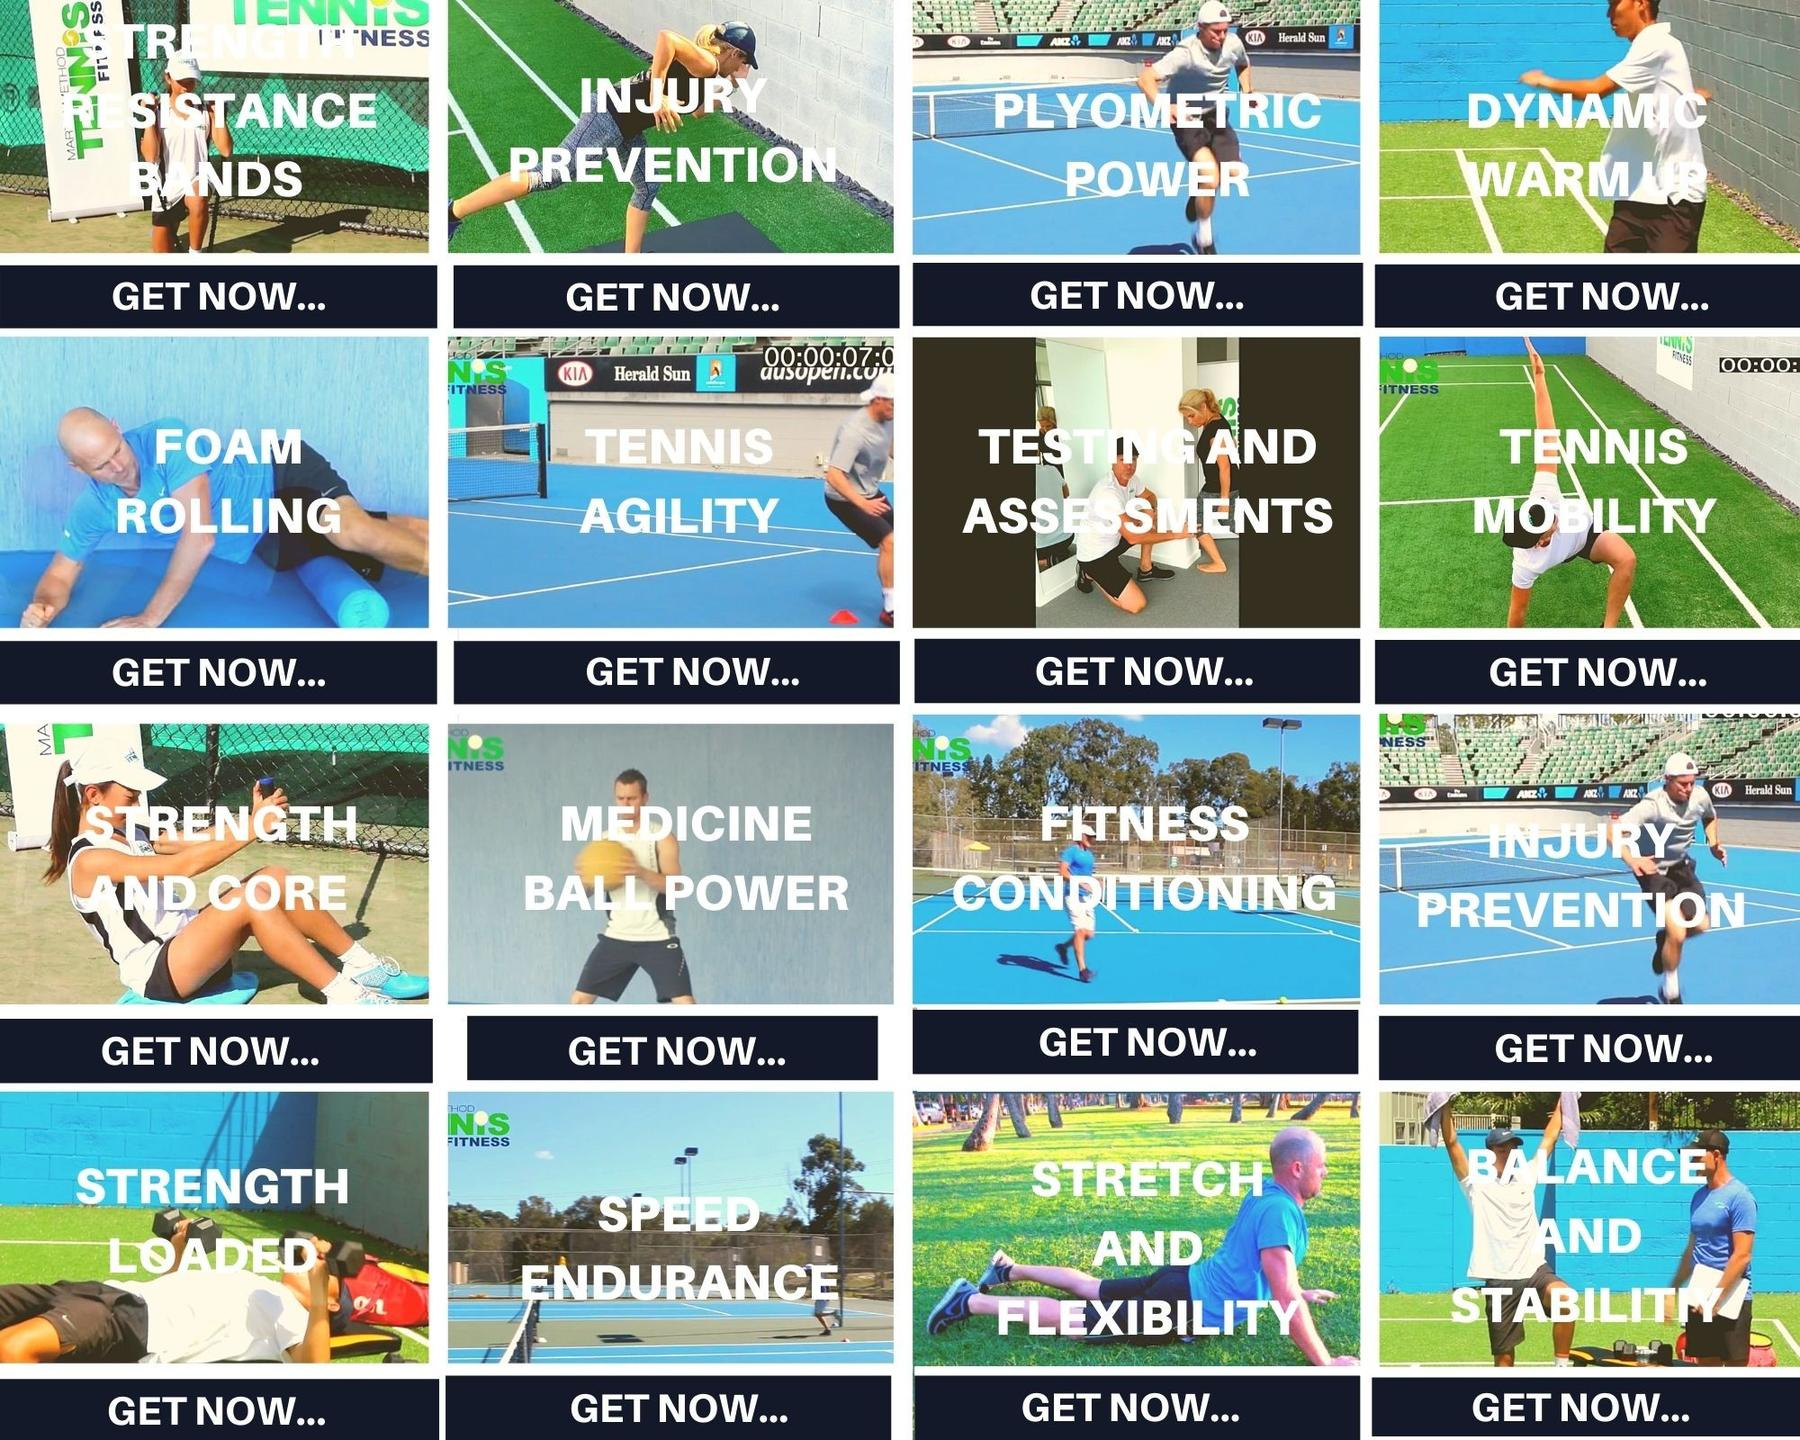 image of junior tennis programs